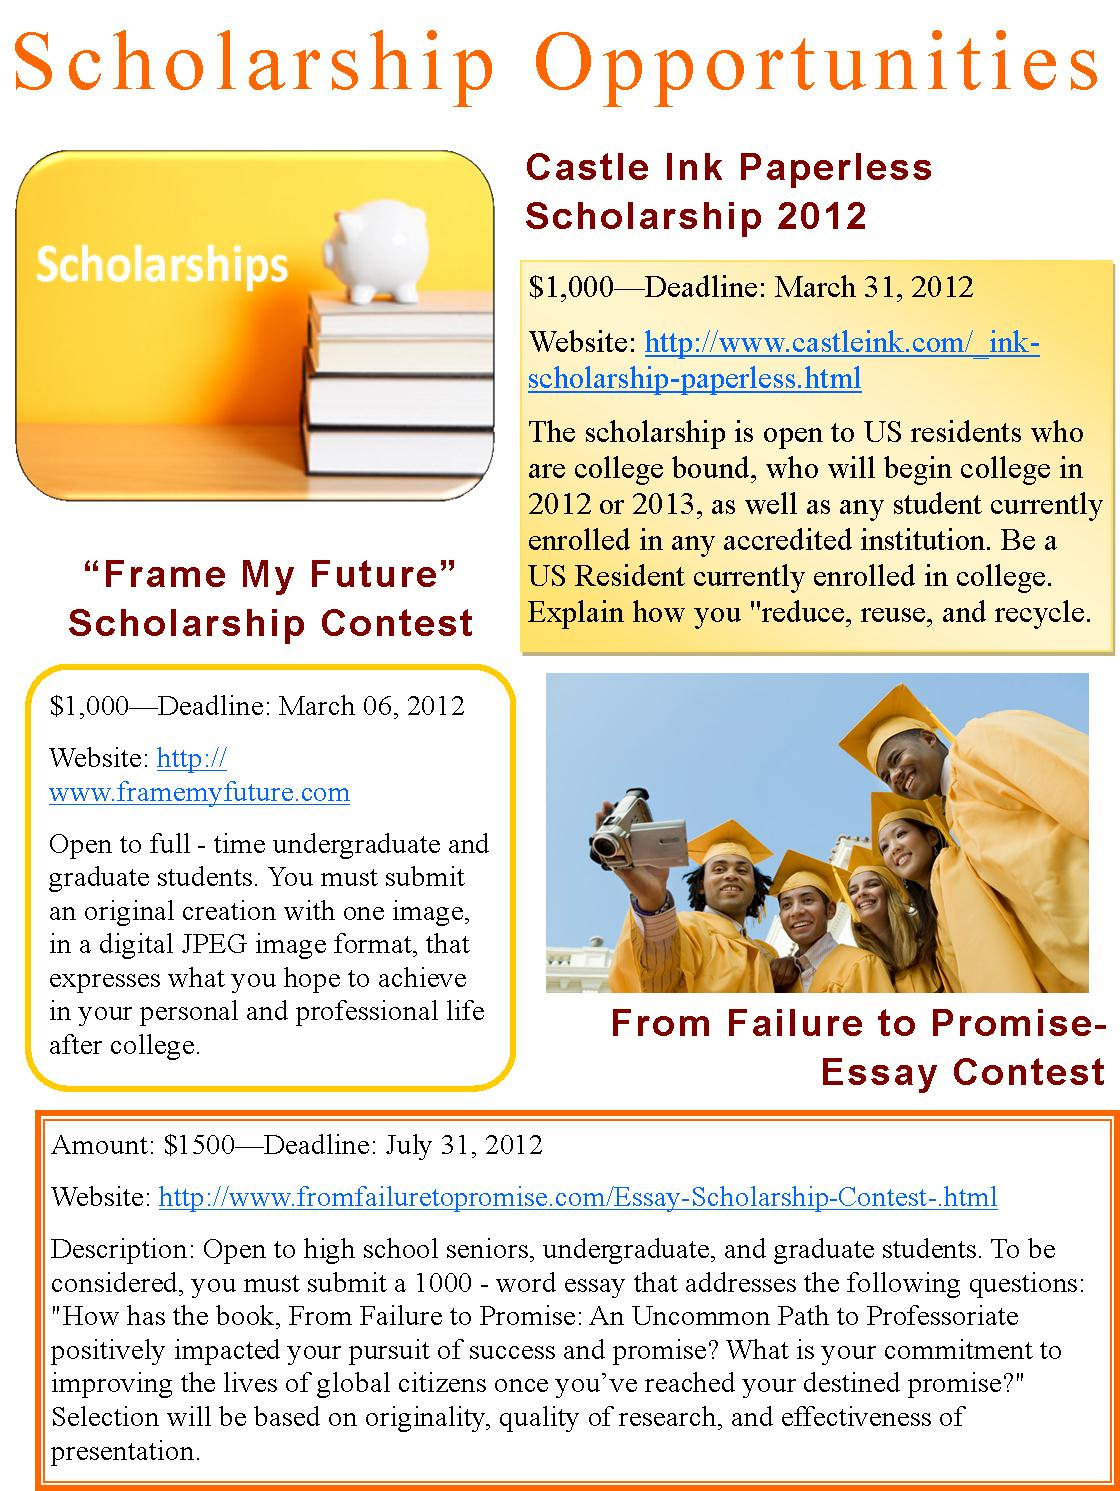 005 Essay Example From Failure To Promise Contest Unique Full